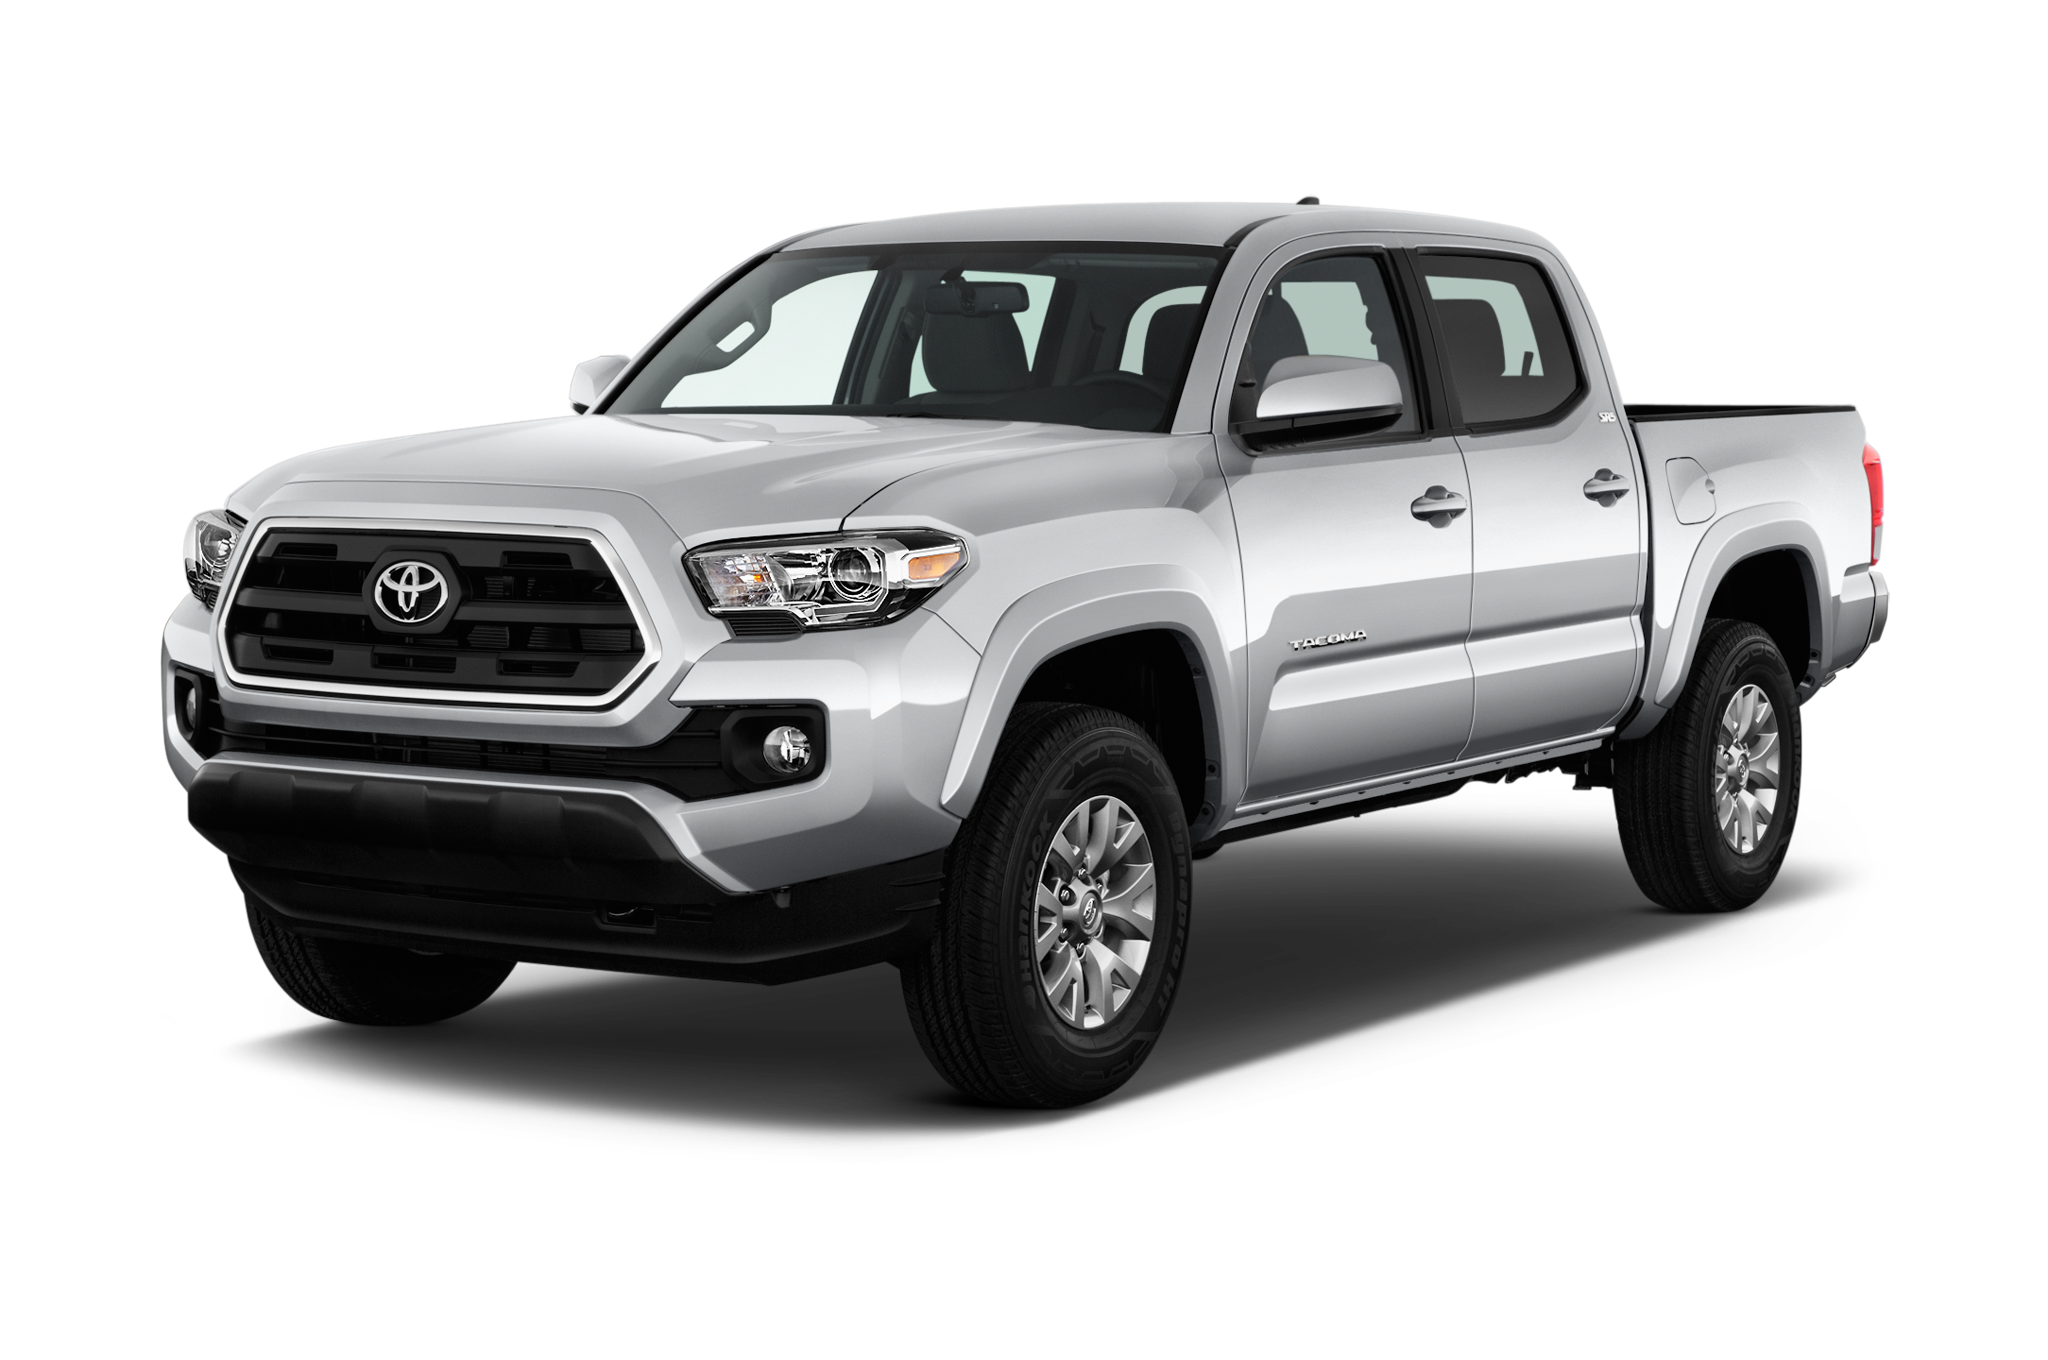 2016 toyota tacoma sr5 double cab 4x2 4 cyl auto short bed exterior features msn autos. Black Bedroom Furniture Sets. Home Design Ideas